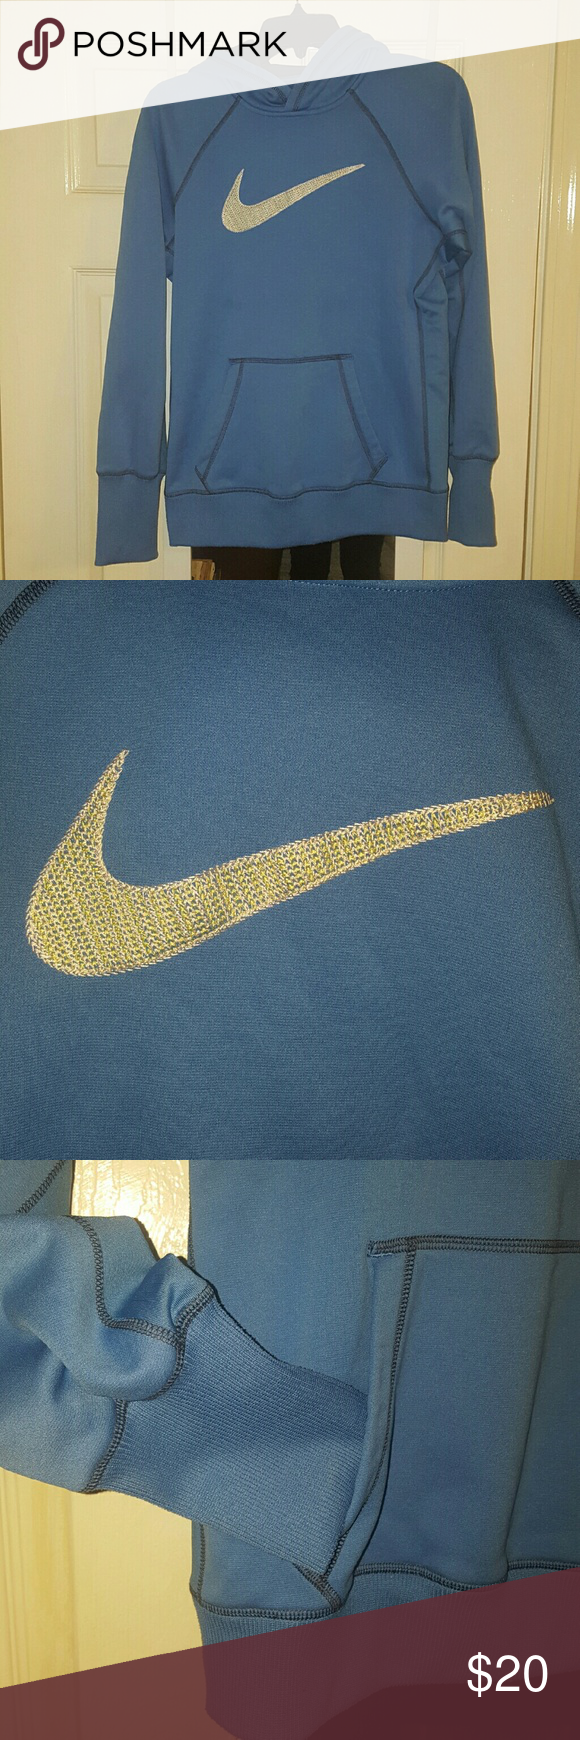 Nike Therma Fit Hooded Sweatshirt 100% Polyester Therma Fit Hoodie. The nike logo is stiched so it will not fade or melt in wash. Women's fit. Perfect condition. Nike Tops Sweatshirts & Hoodies